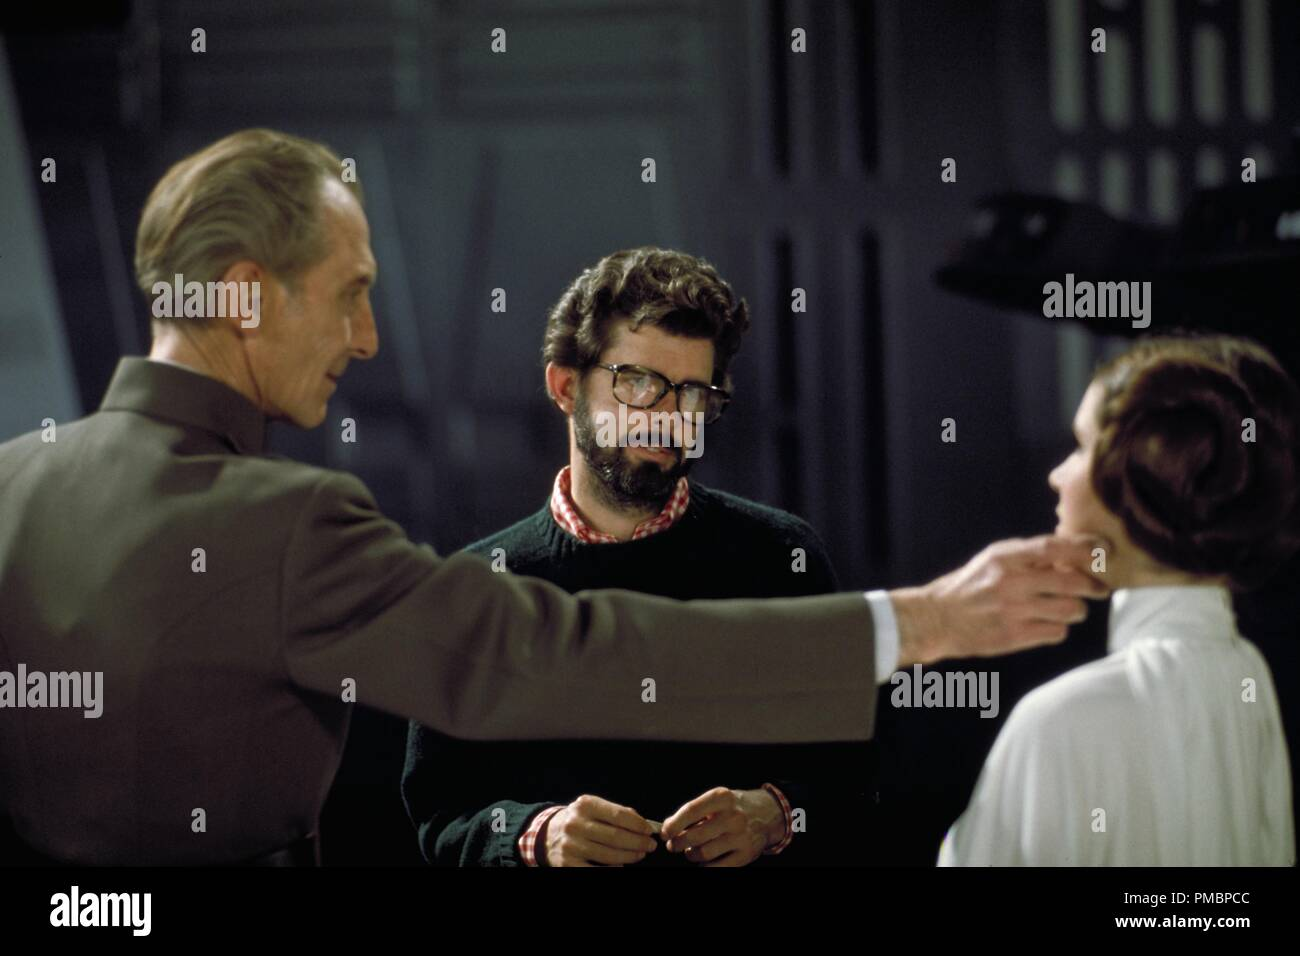 Peter Cushing, George Lucas, and Carrie Fisher on the Death Star set in 'Star Wars Episode IV: A New Hope' (1977)  File Reference # 32603_412THA - Stock Image